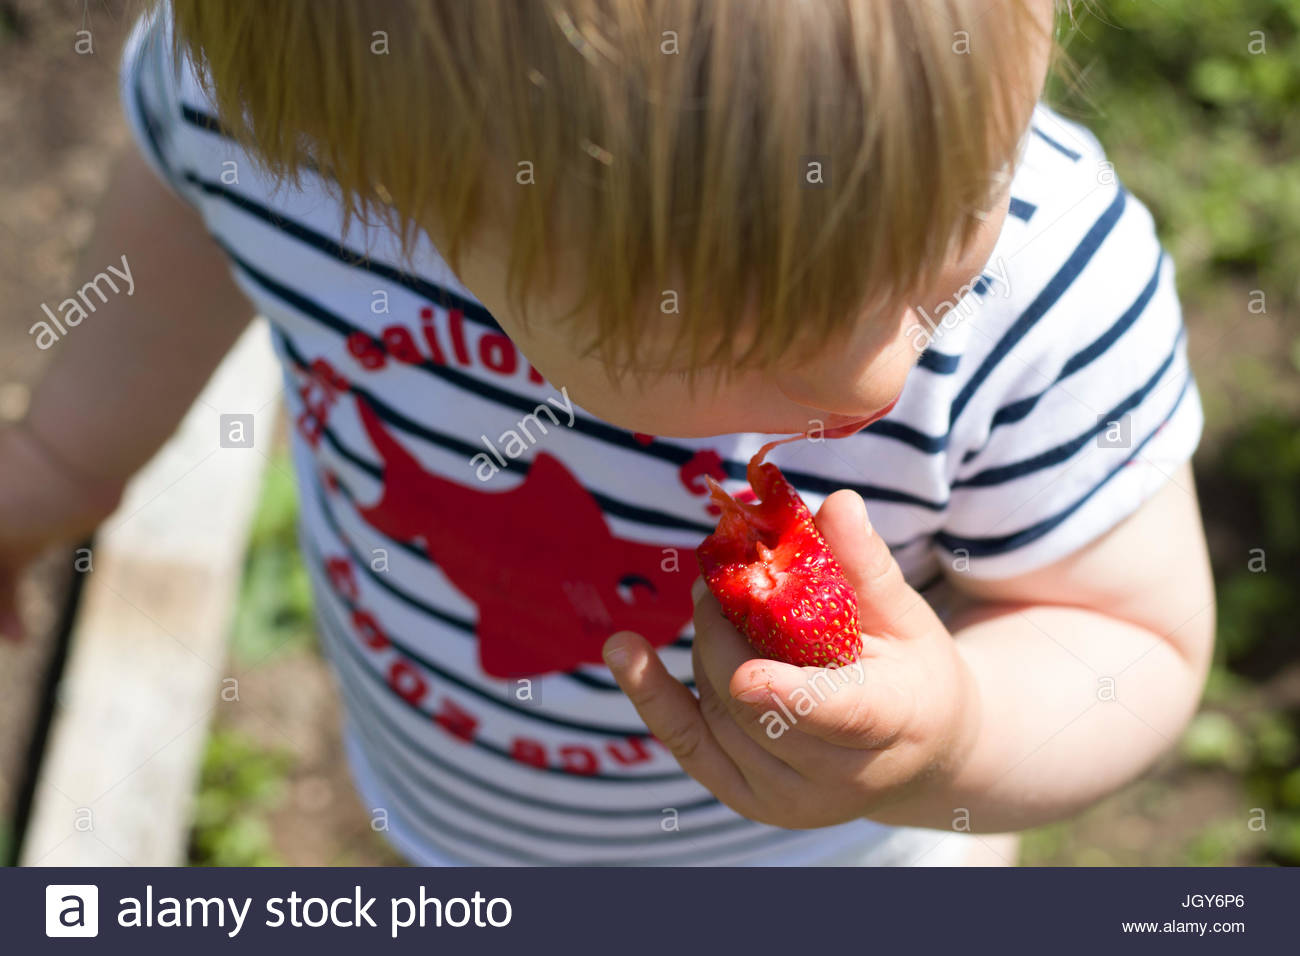 Boy eating a strawberry - Stock Image